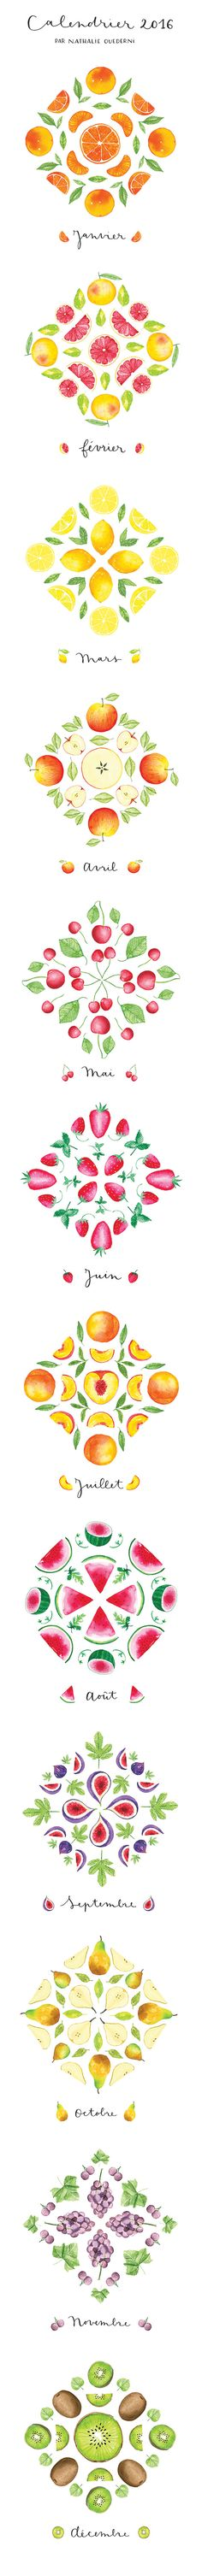 Watercolor Fruit Calendar by Nathalie Ouederni